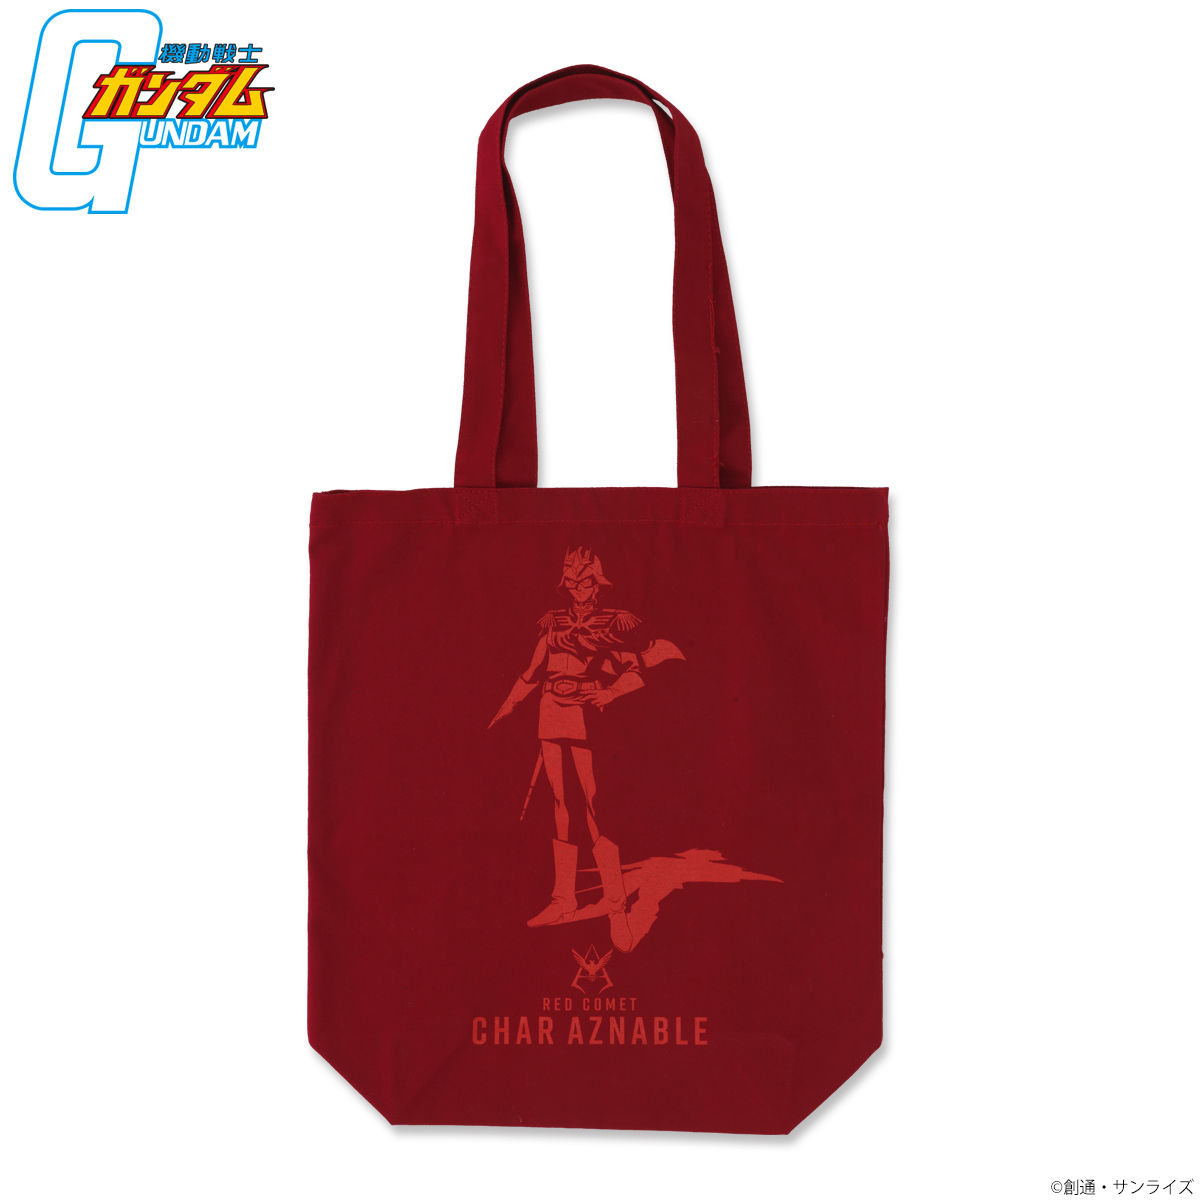 Mobile Suit Gundam RED Series Tote Bag